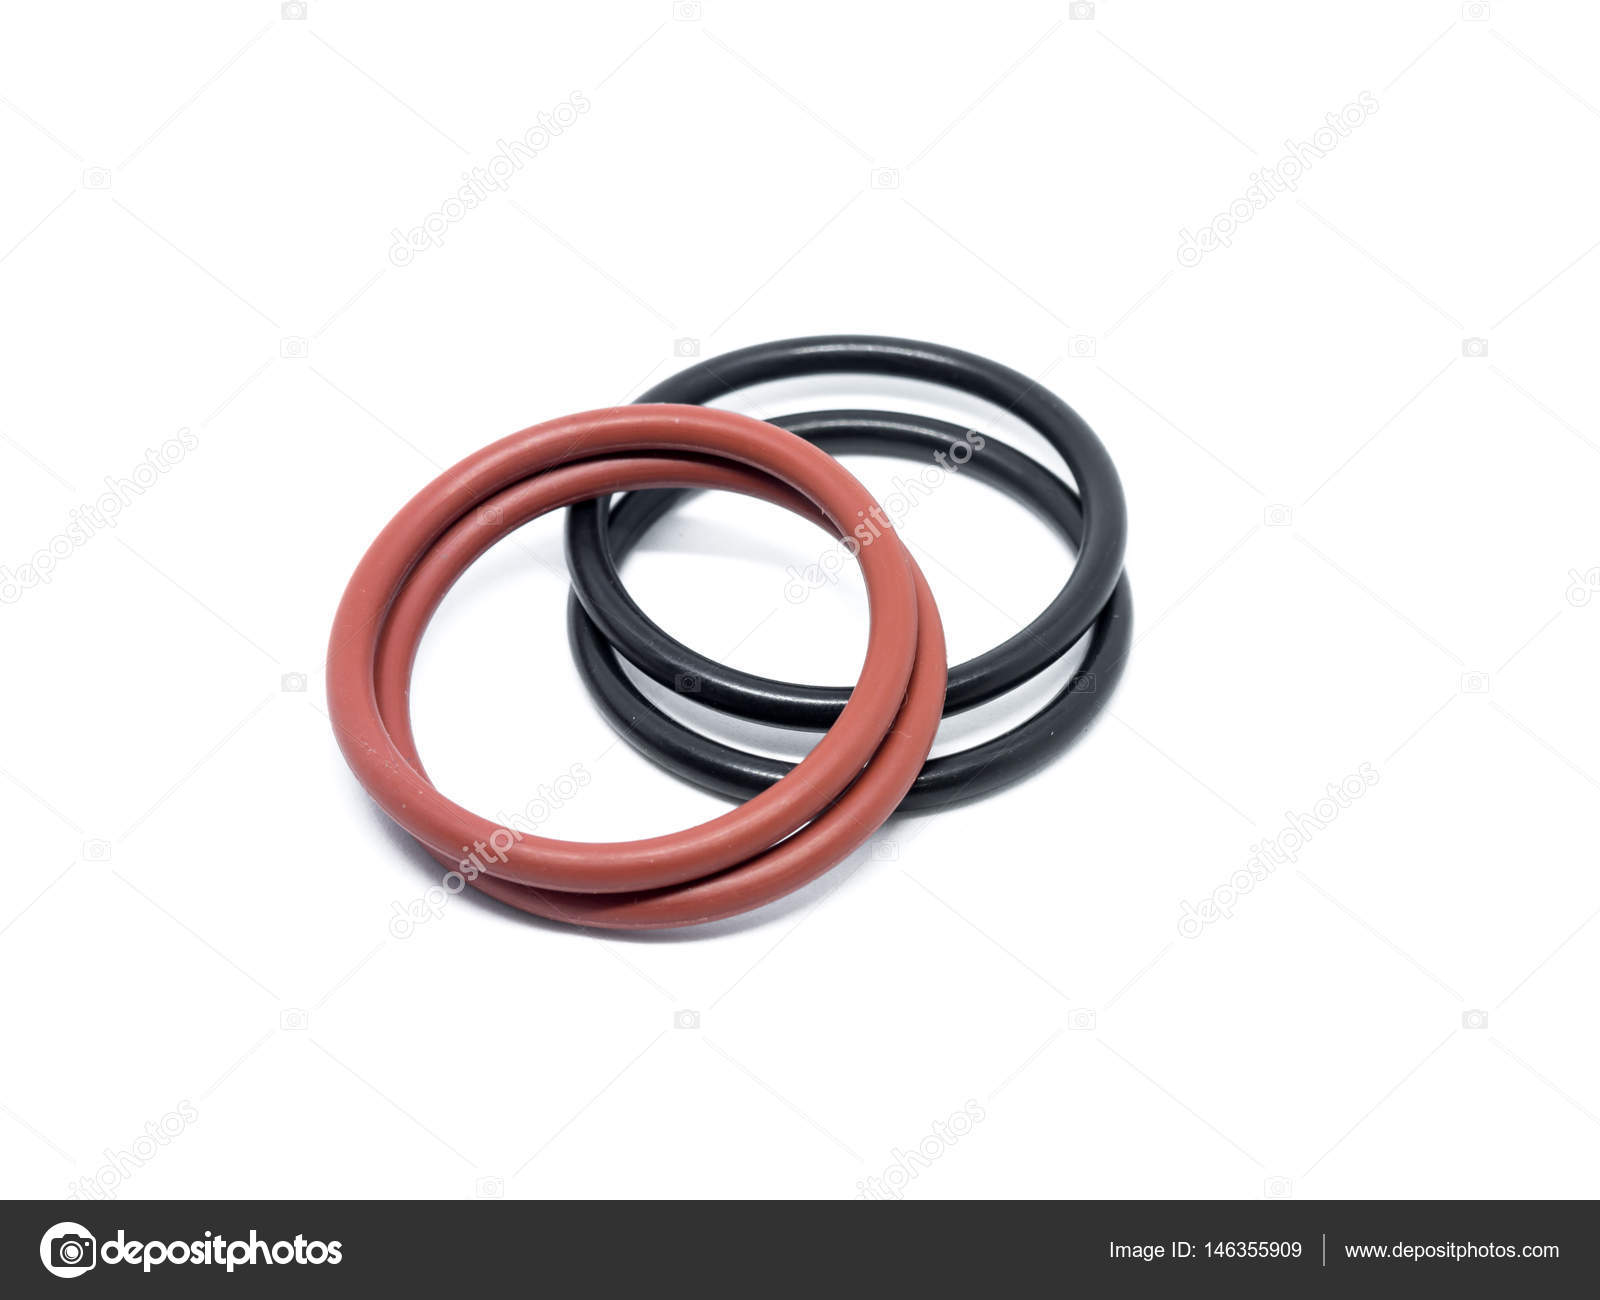 Assorted O Rings Industrial use. — Stock Photo © nikonlike #146355909